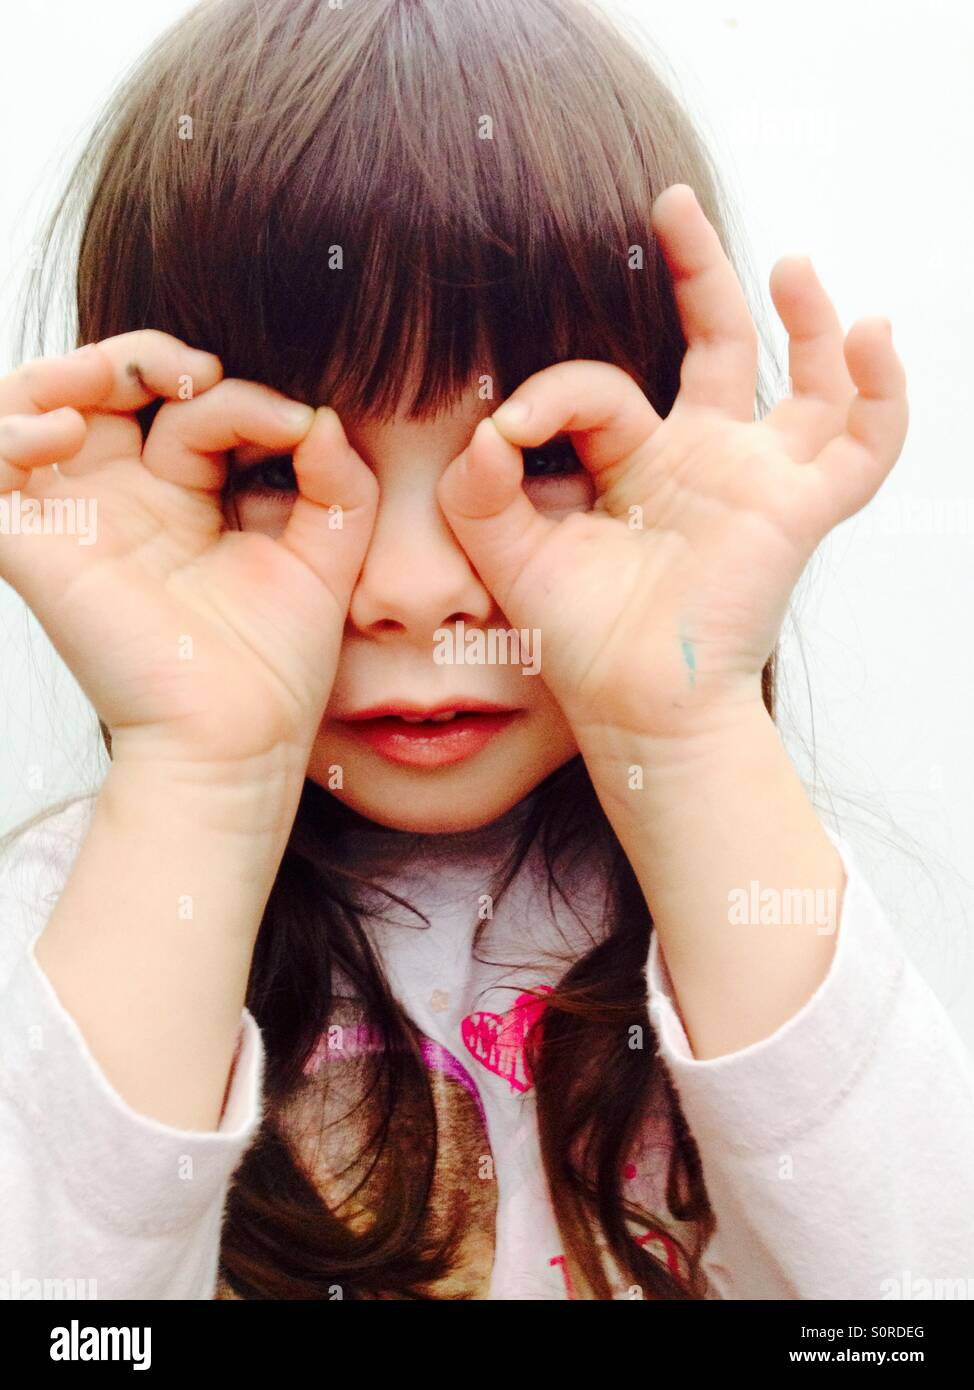 3-year old girl looking though her fingers - Stock Image